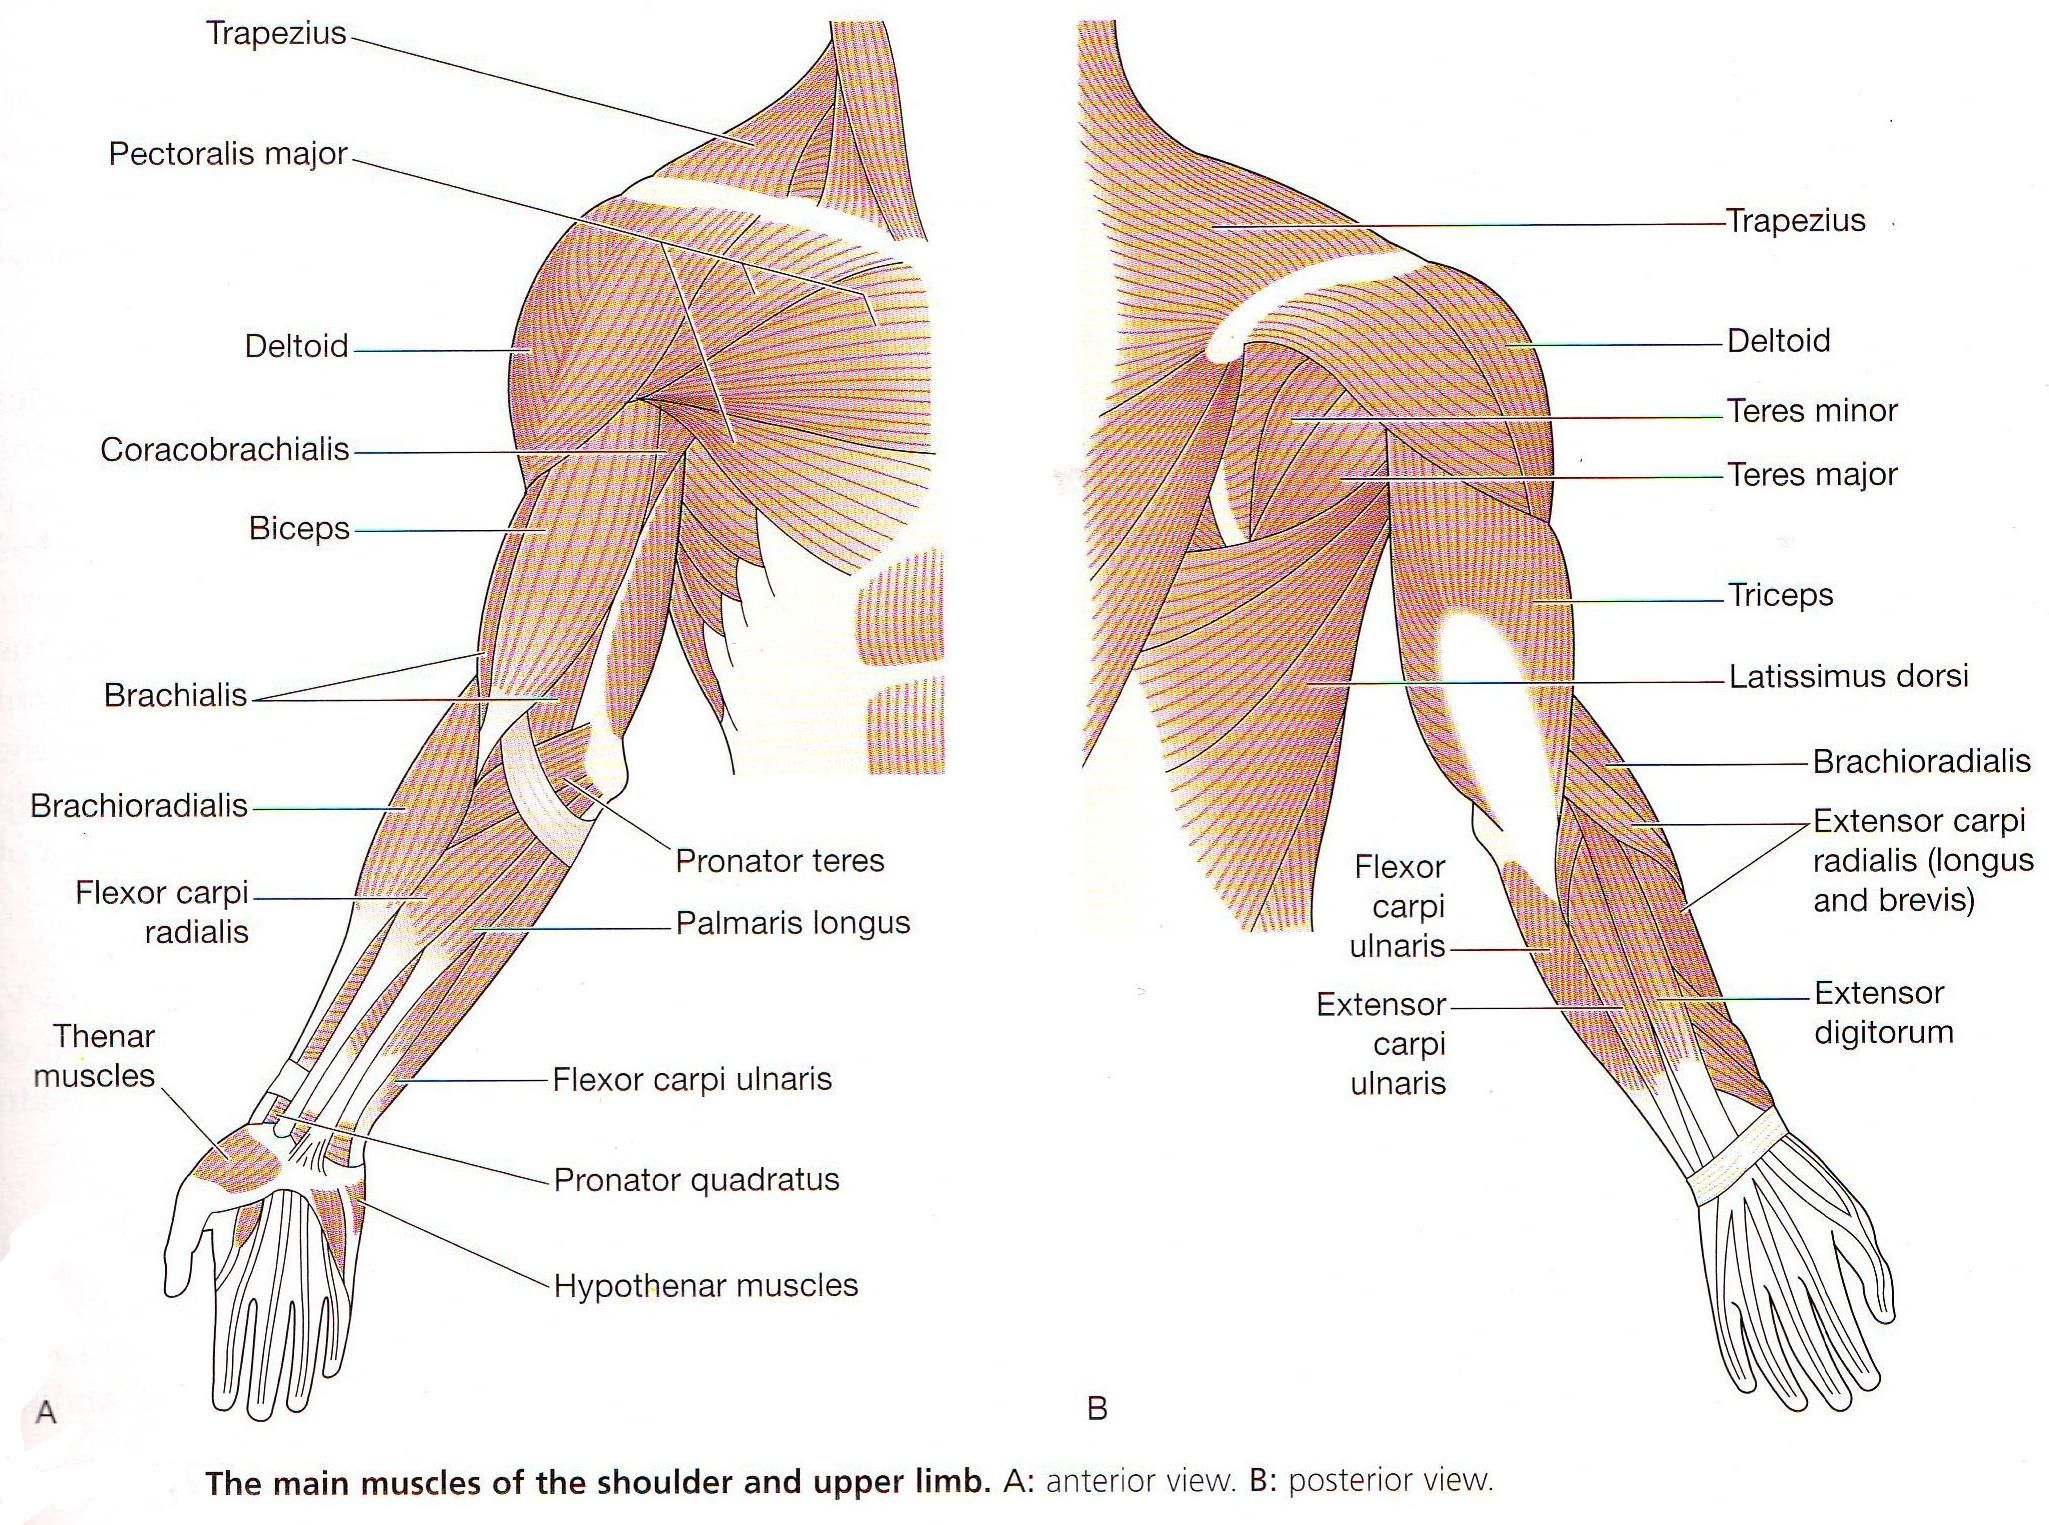 Diagram Muscles Of The Upper Limb Anatomy Human Arm Muscles ...